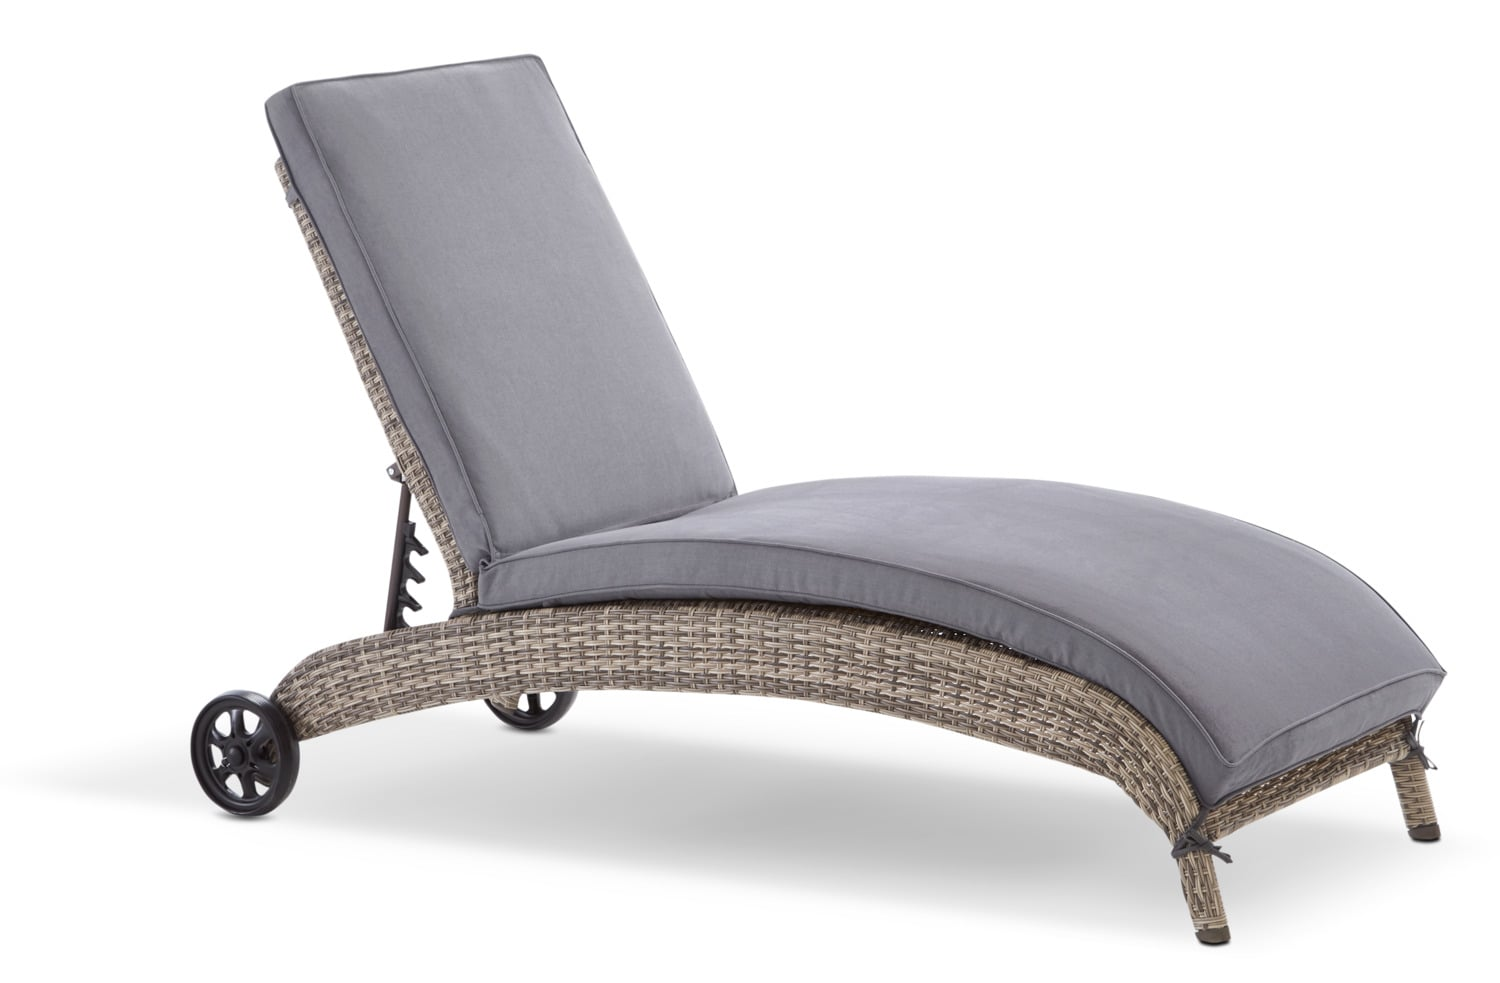 Orion Chaise Lounge - Grey